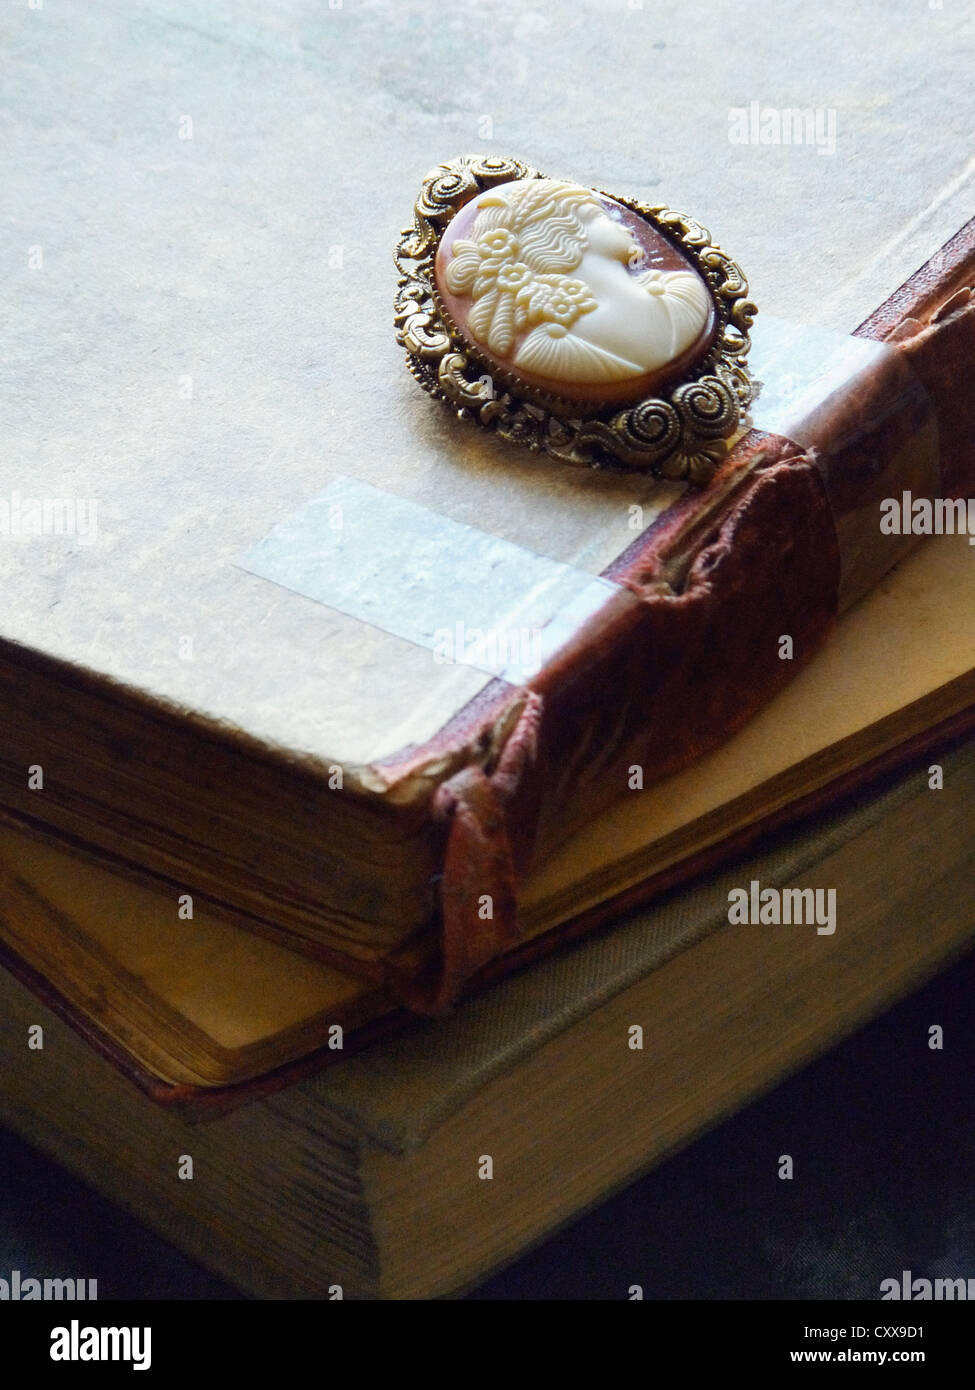 An old cameo brooch in a golden frame, laid on vintage books. - Stock Image